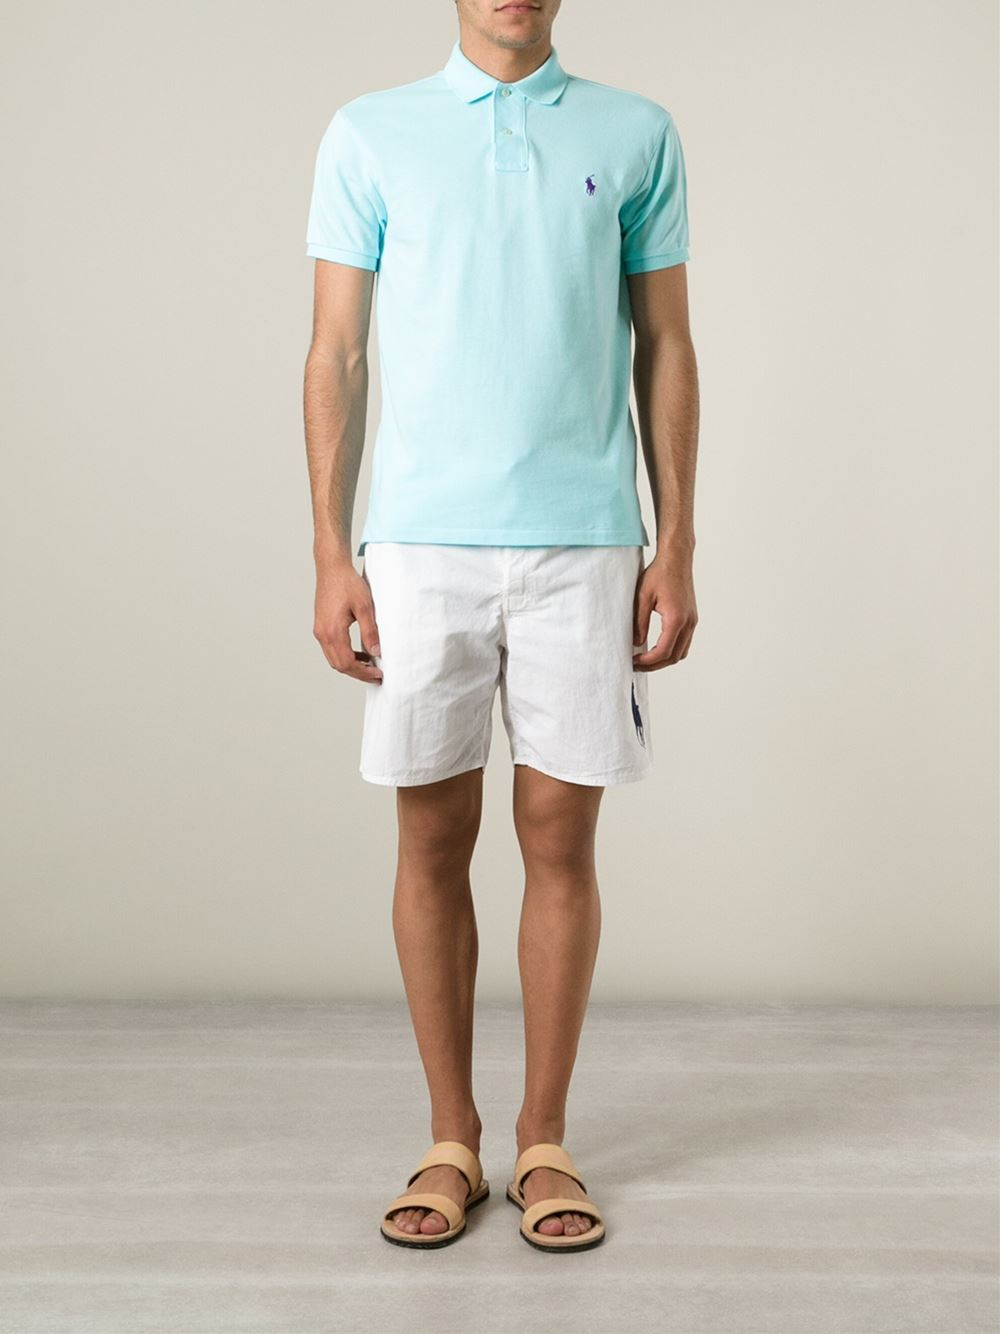 ralph lauren swim 2015 adidas polo shirts mens